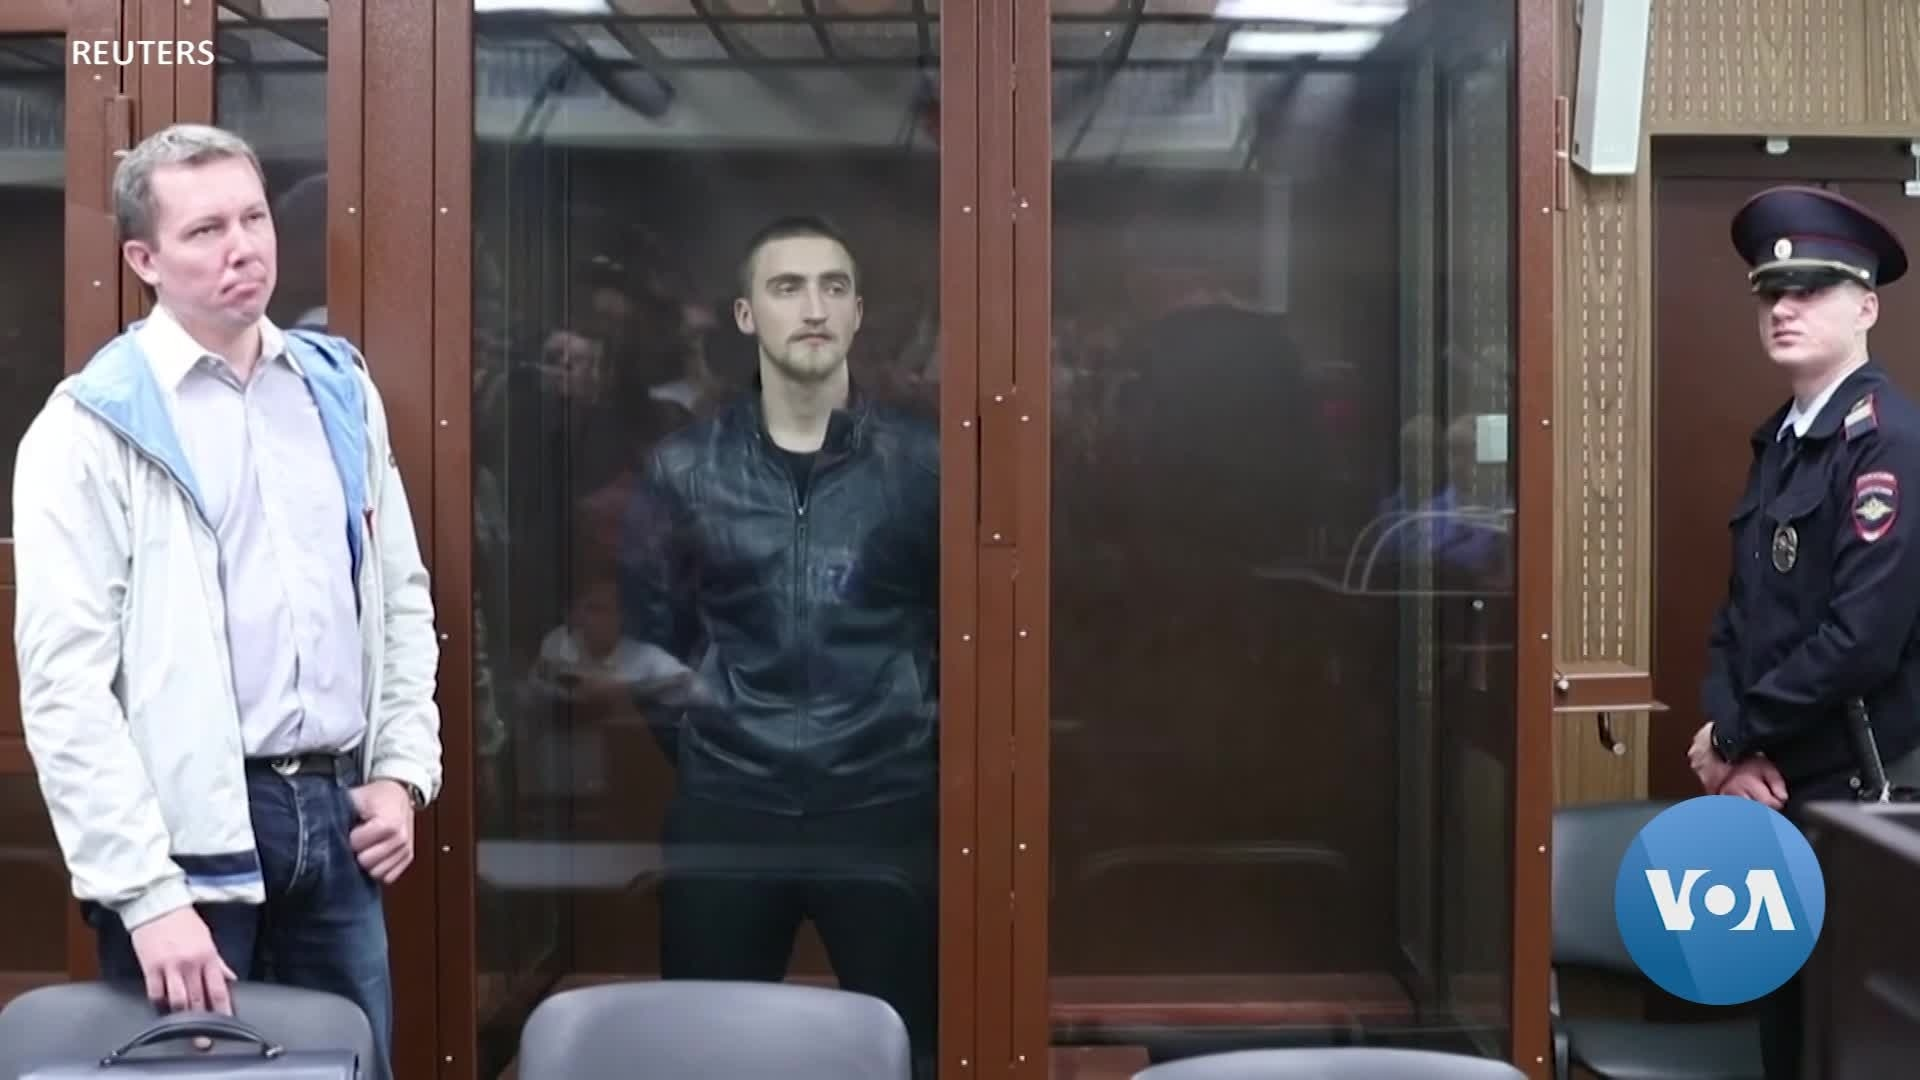 In Fight Against Repression, Actor's Release a Victory for Russian Civil Society